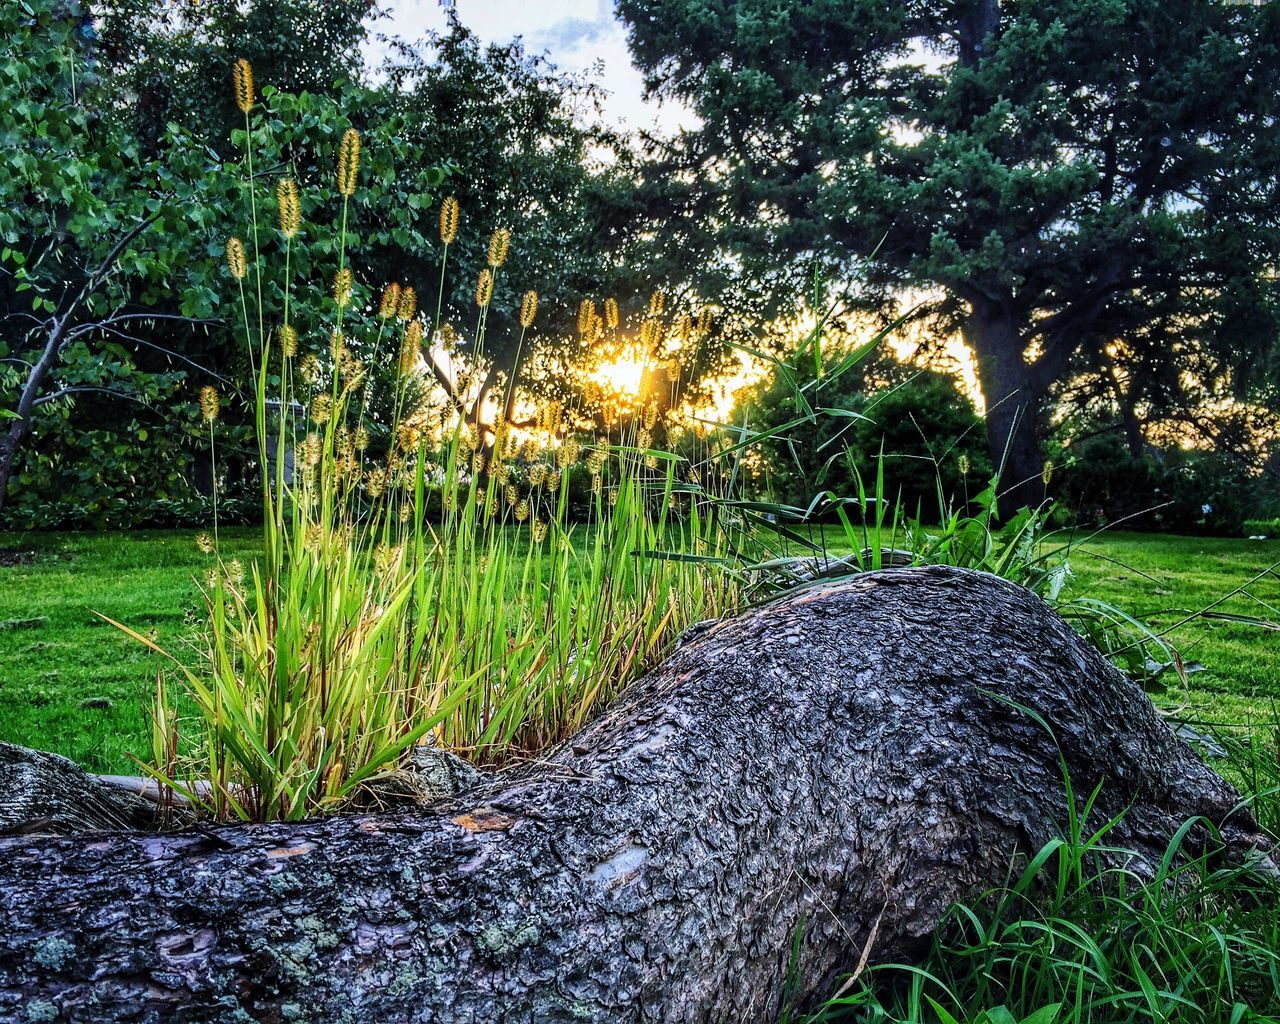 Whittier Minneapolis Minnesota Tree Trunk Fallen Tree Outdoors Urbanphotography Enjoying Life Urban Landscape Urbanscape Afternoon Blues Summertime Urban Nature Tall Grass Urban Photography EyeEm Best Shots Urban Lifestyle